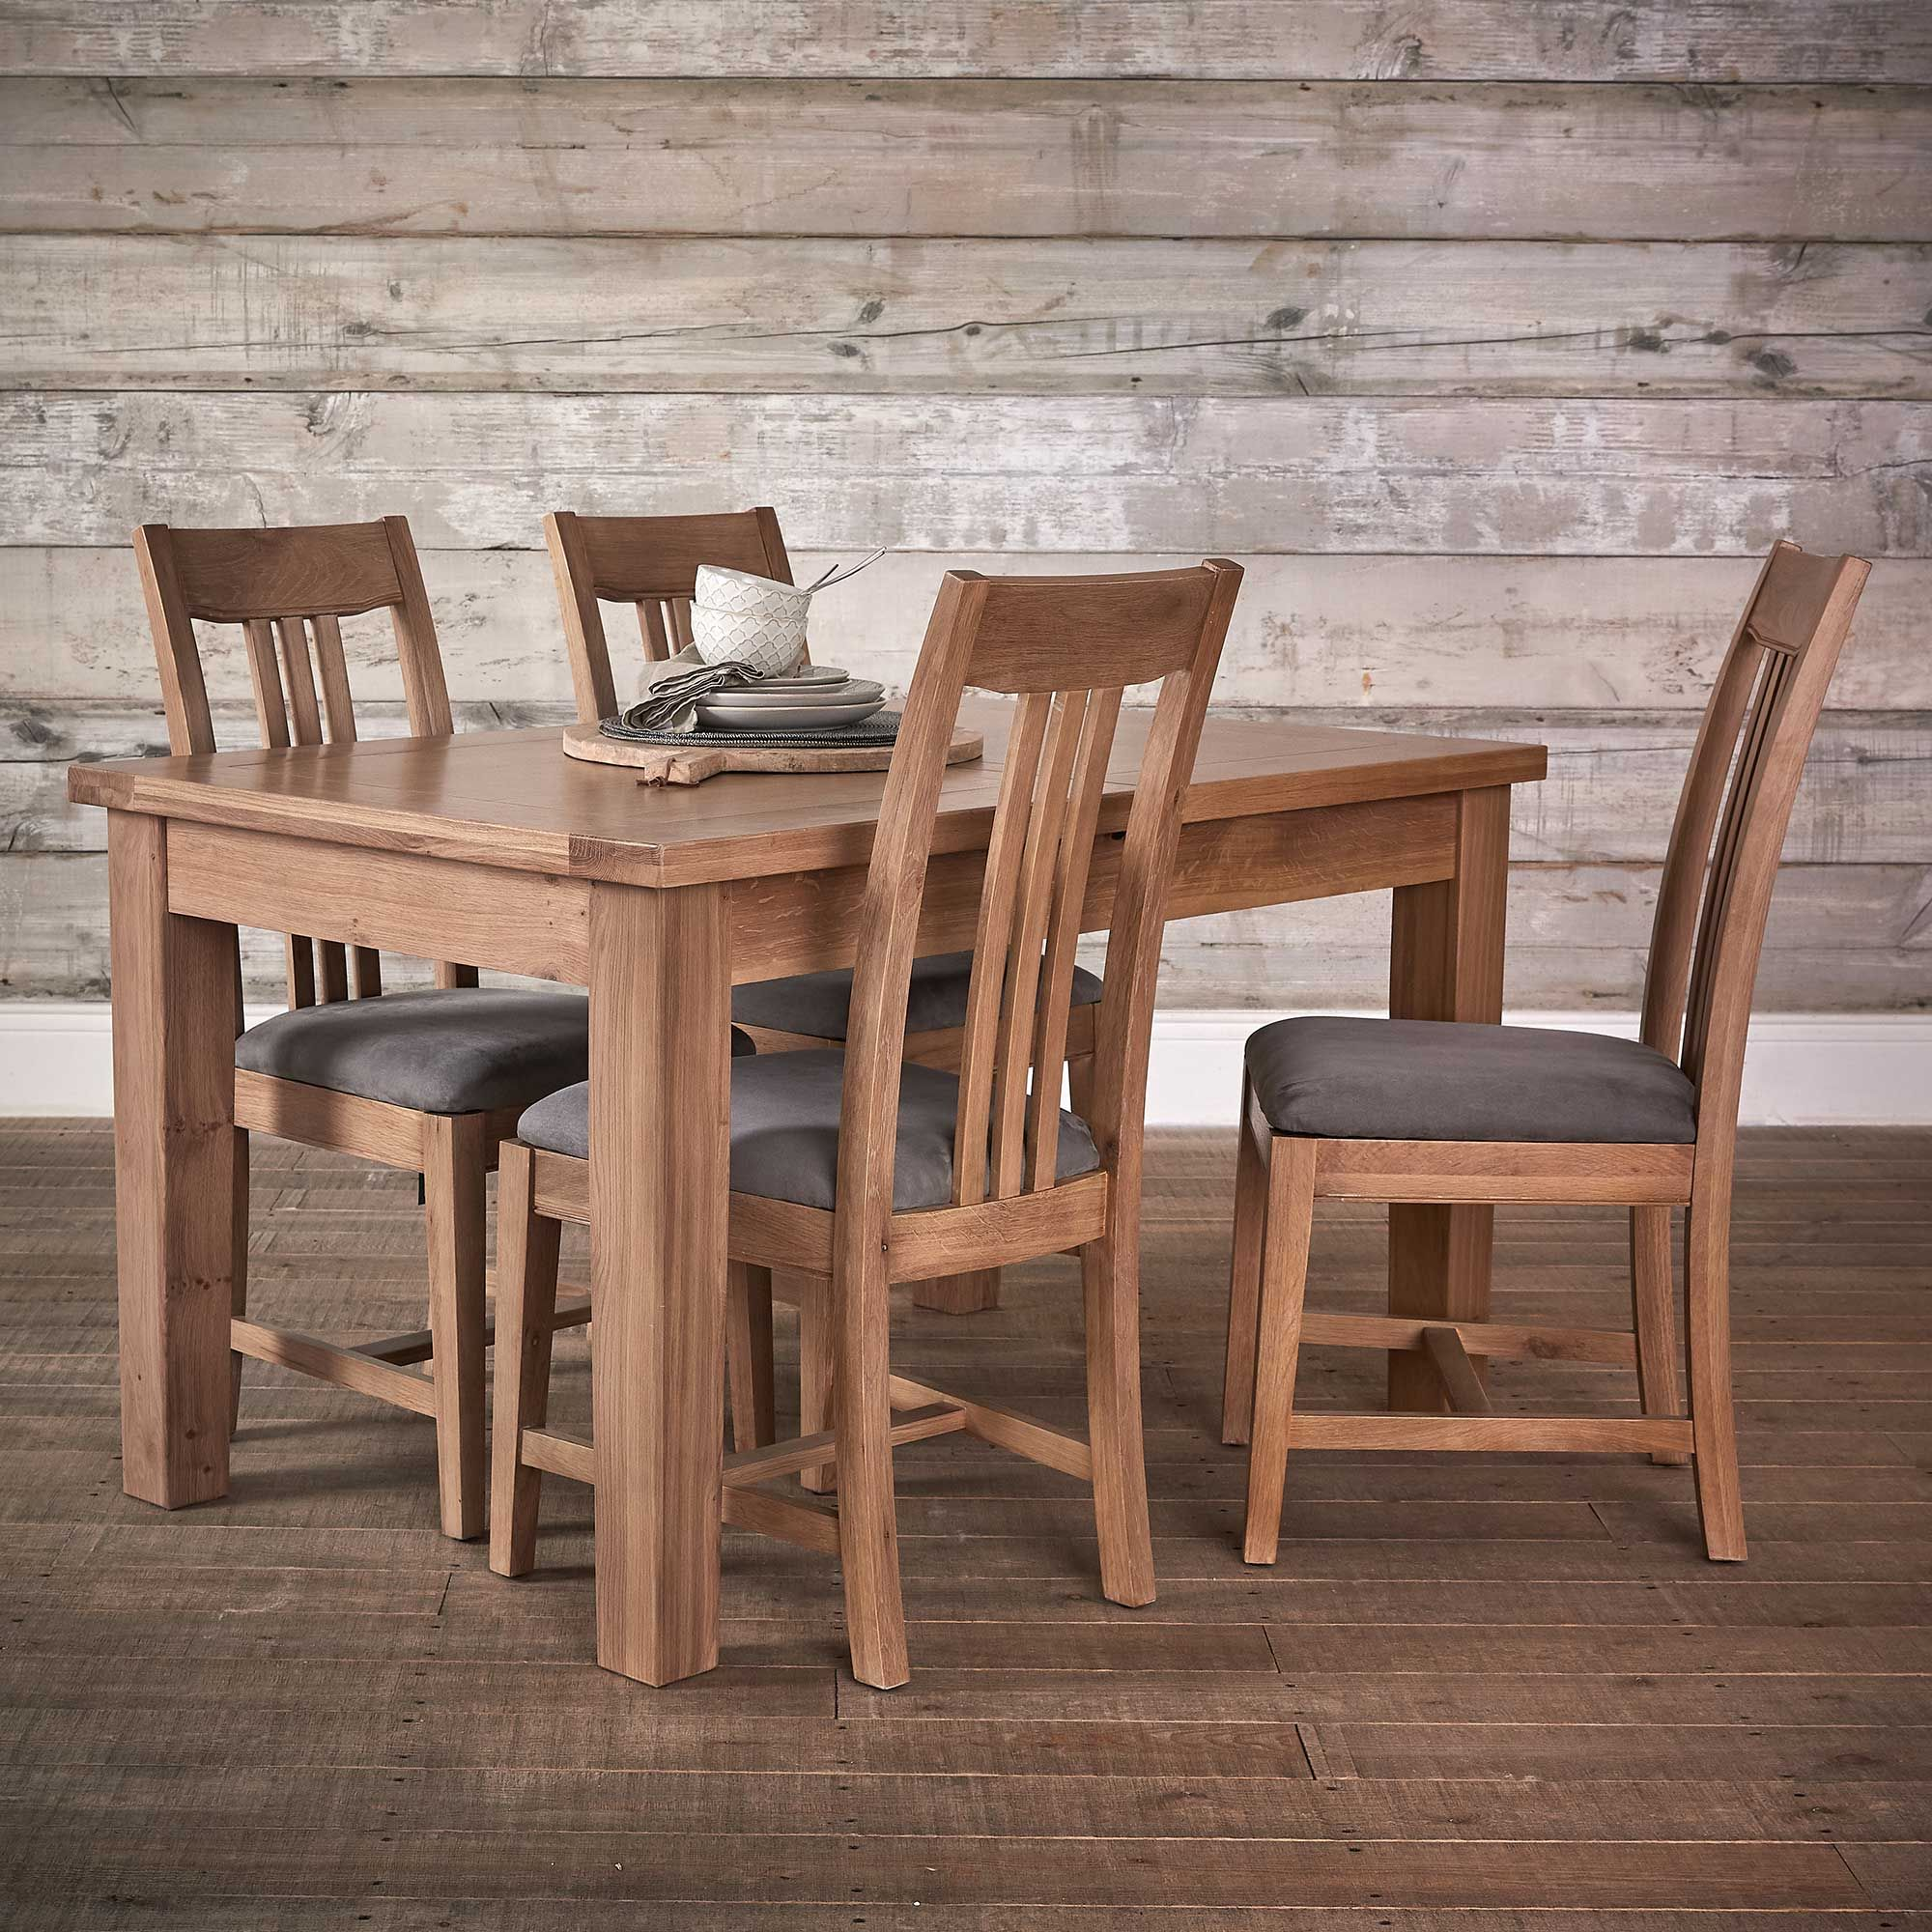 Ripley Large Extending Dining Table And 4 Oak Dining Chairs With Upholstered Seats Washed Oak And Grey Oak